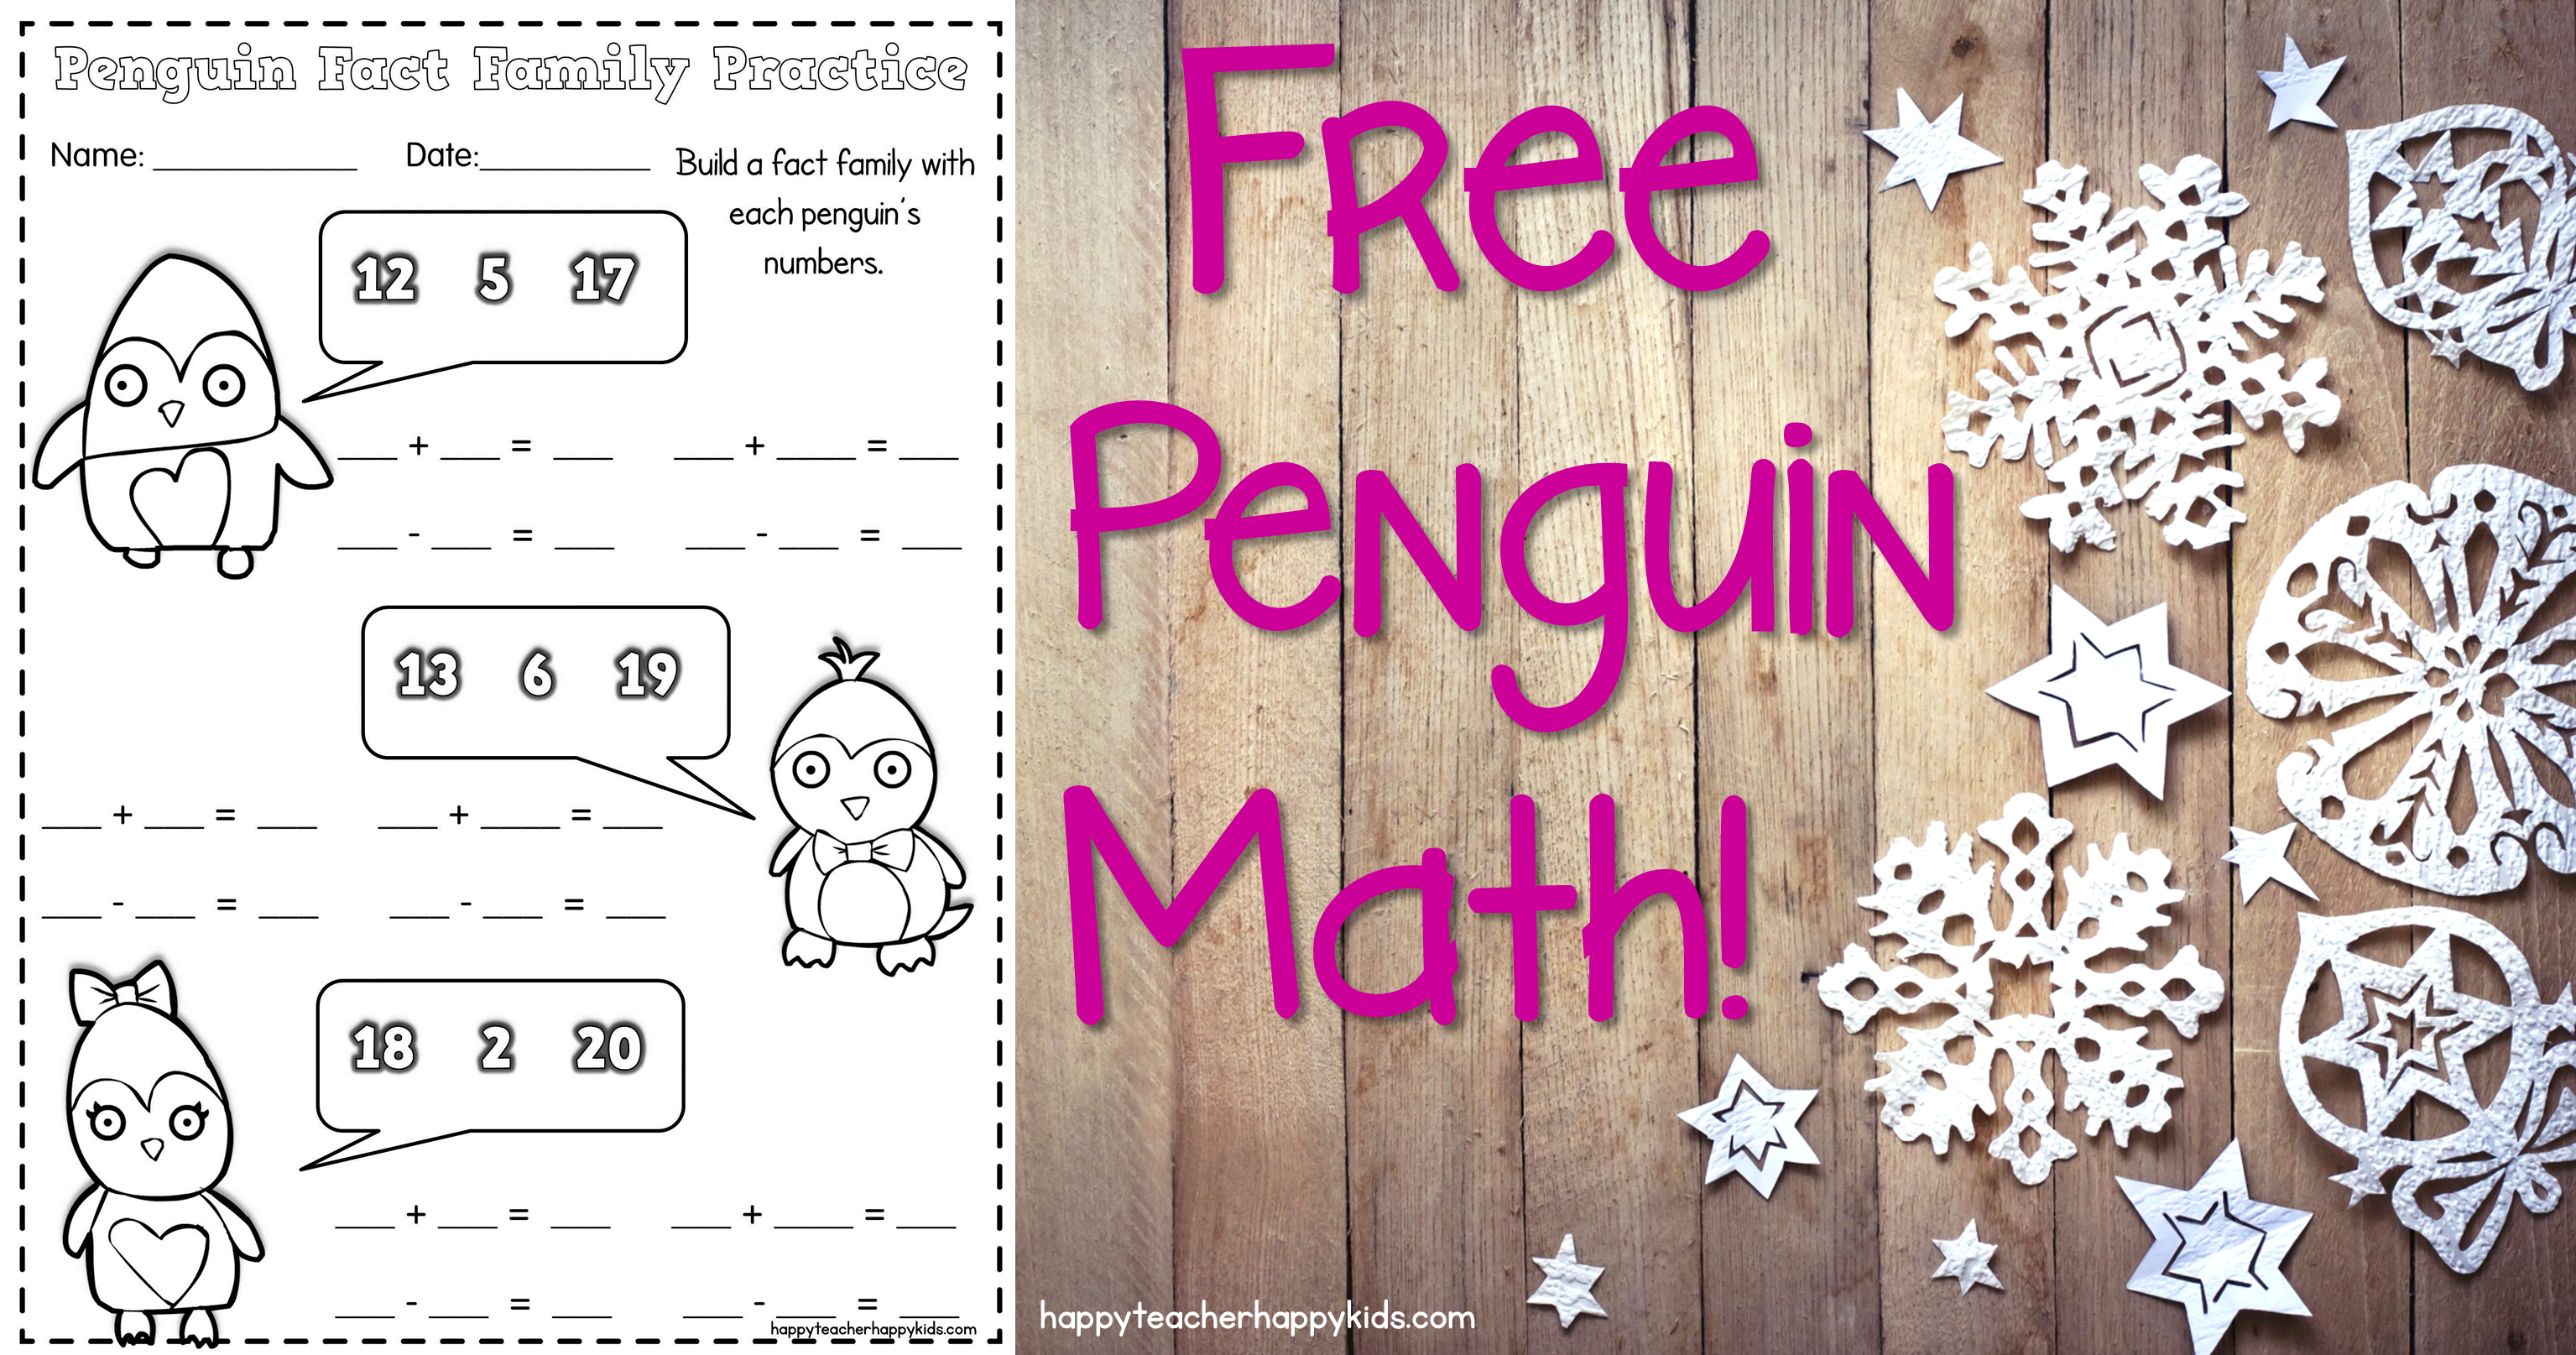 Penguin Math Craft Practicing Fact Families In First Grade Happy